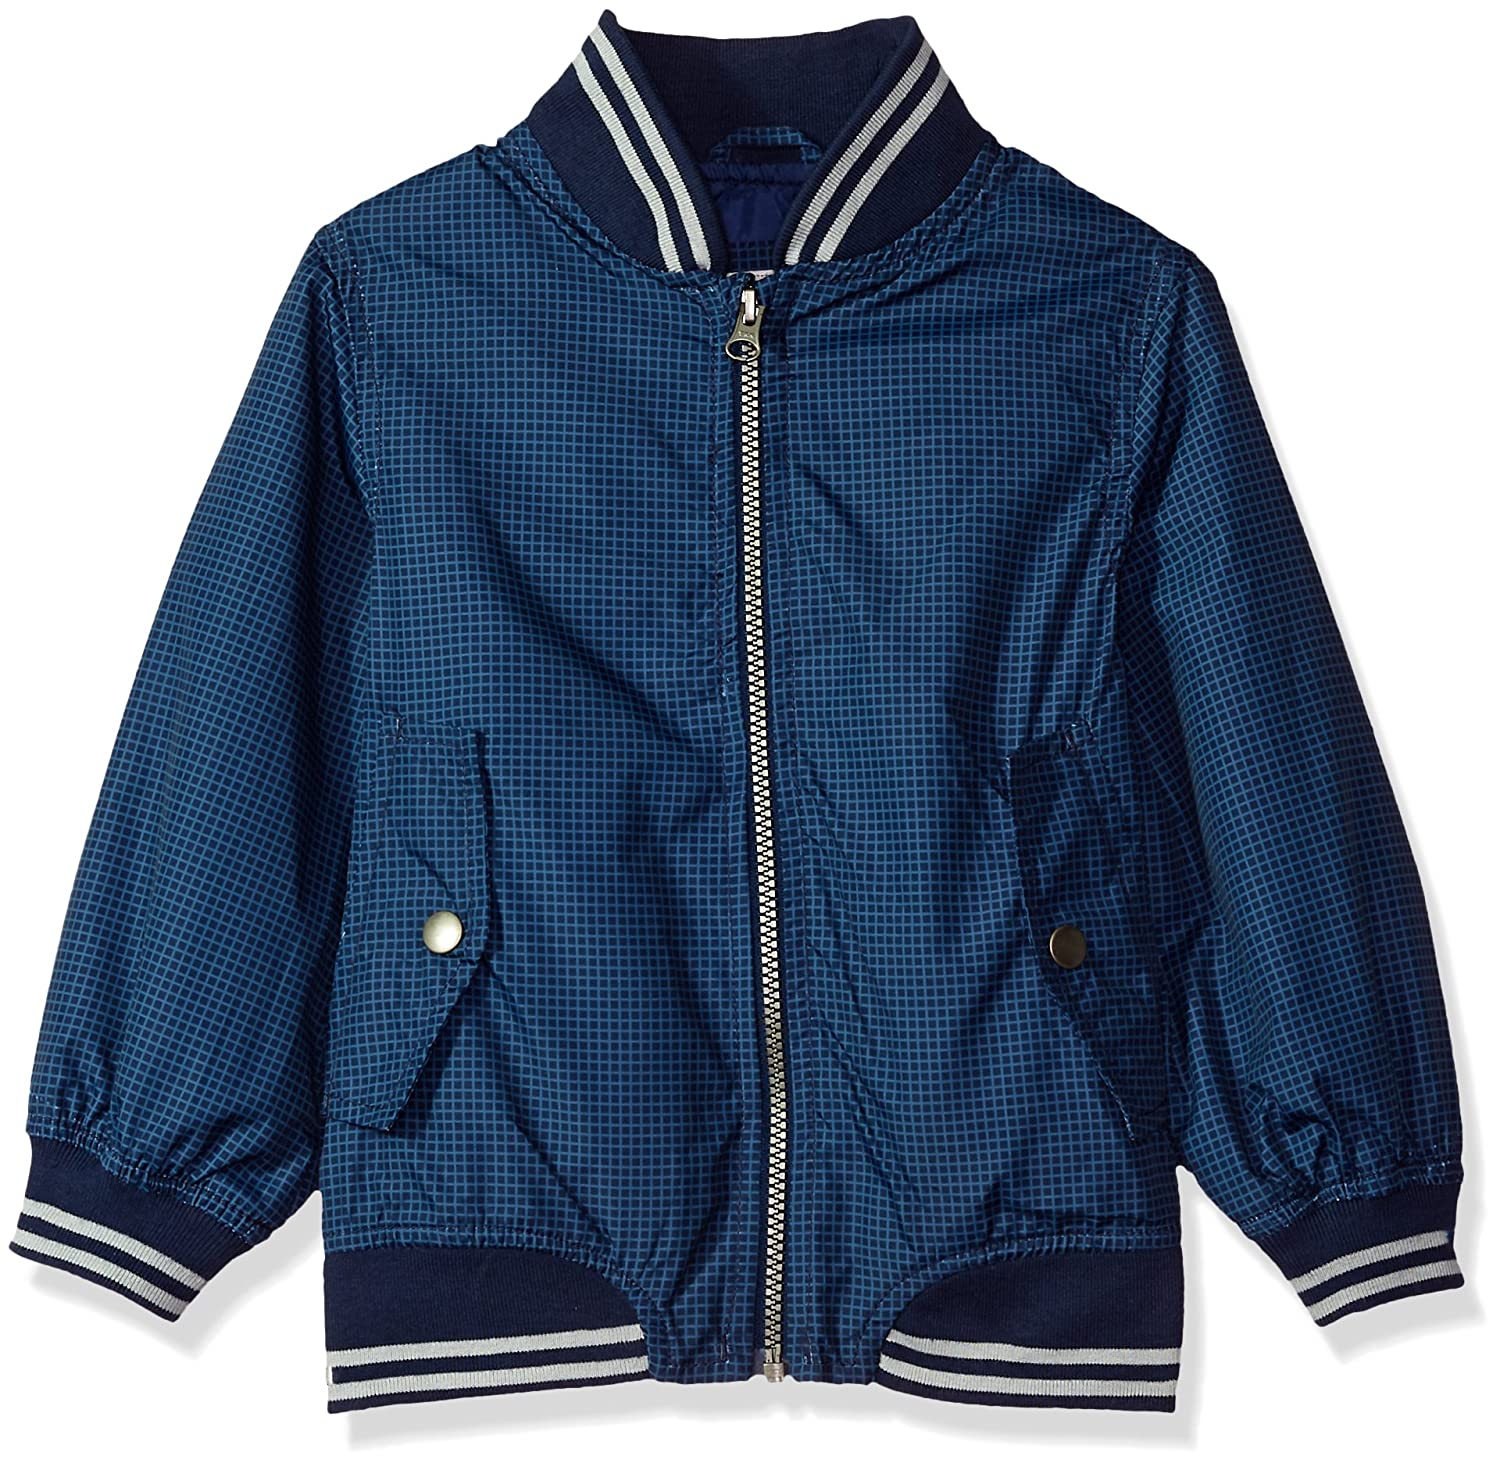 Kids 1950s Clothing & Costumes: Girls, Boys, Toddlers Carters Boys Lightweight Bomber Jacket $27.92 AT vintagedancer.com